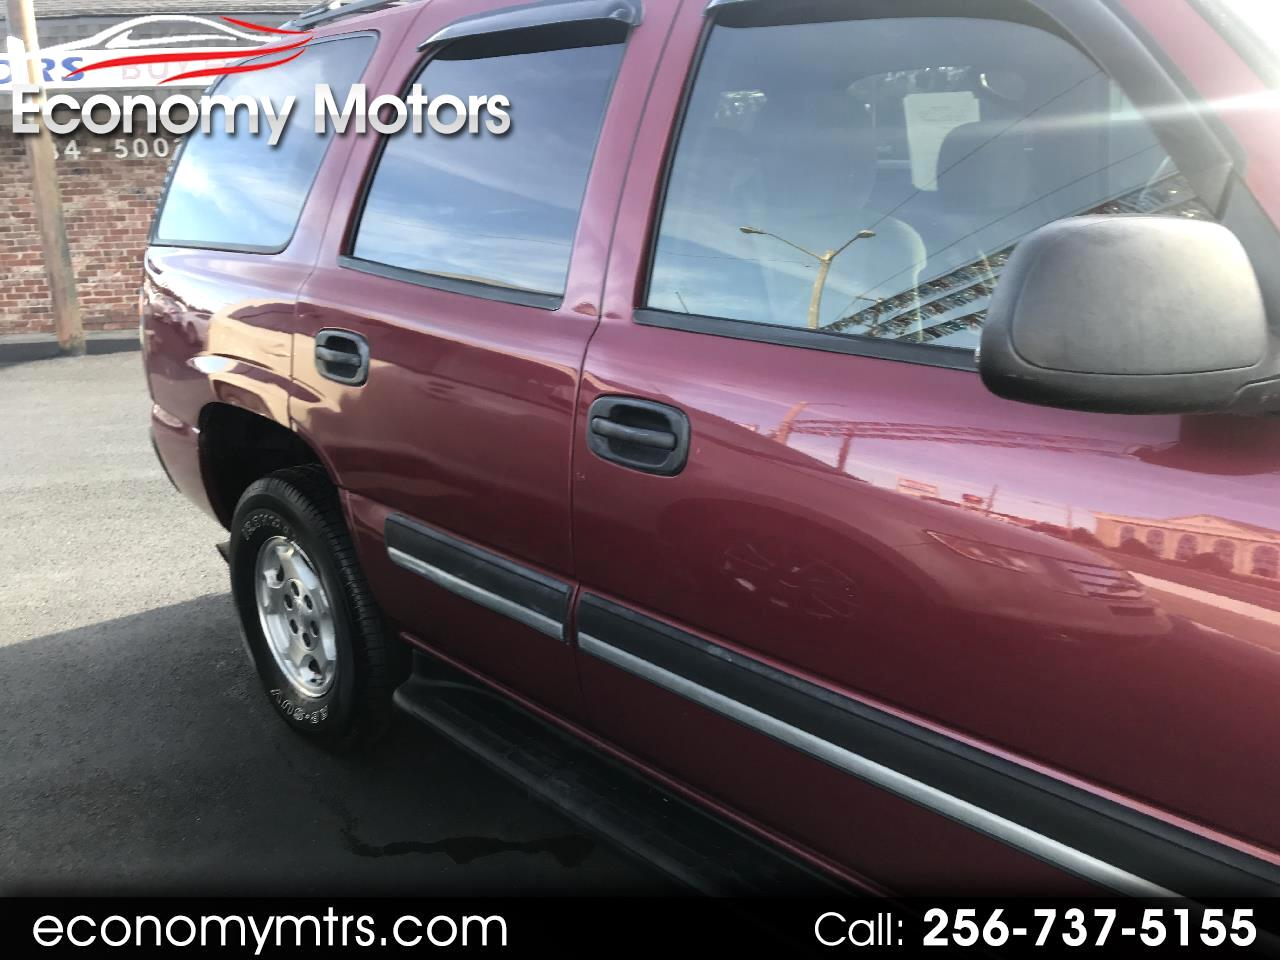 buy here pay here 2005 chevrolet tahoe 2wd for sale in cullman al 35055 economy motors. Black Bedroom Furniture Sets. Home Design Ideas